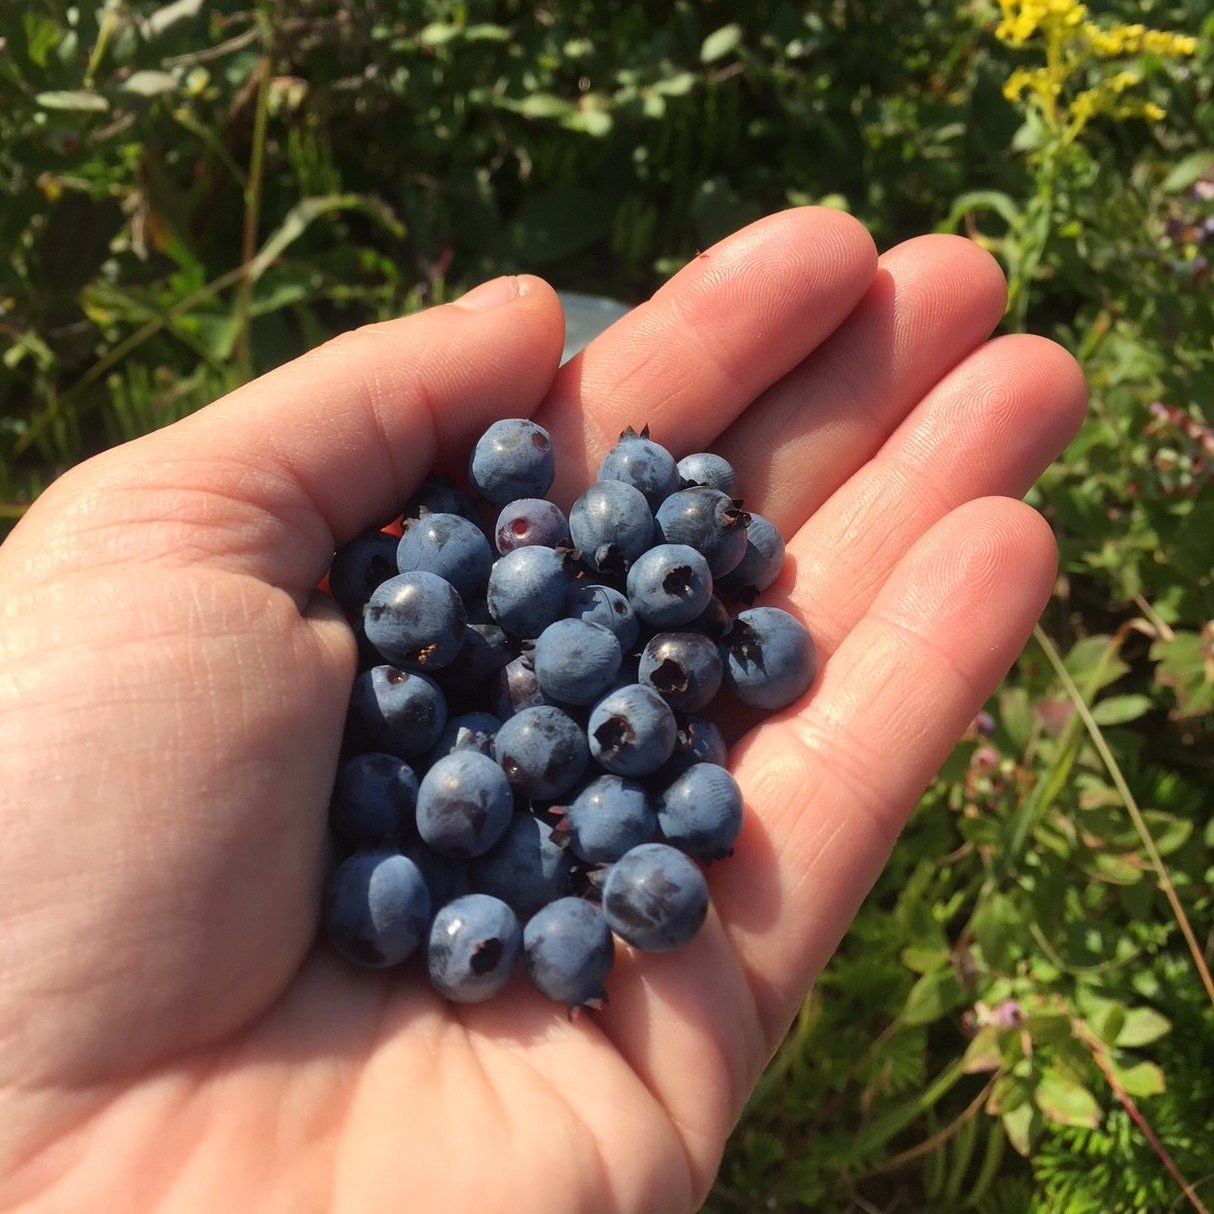 Wild blueberries in hand.